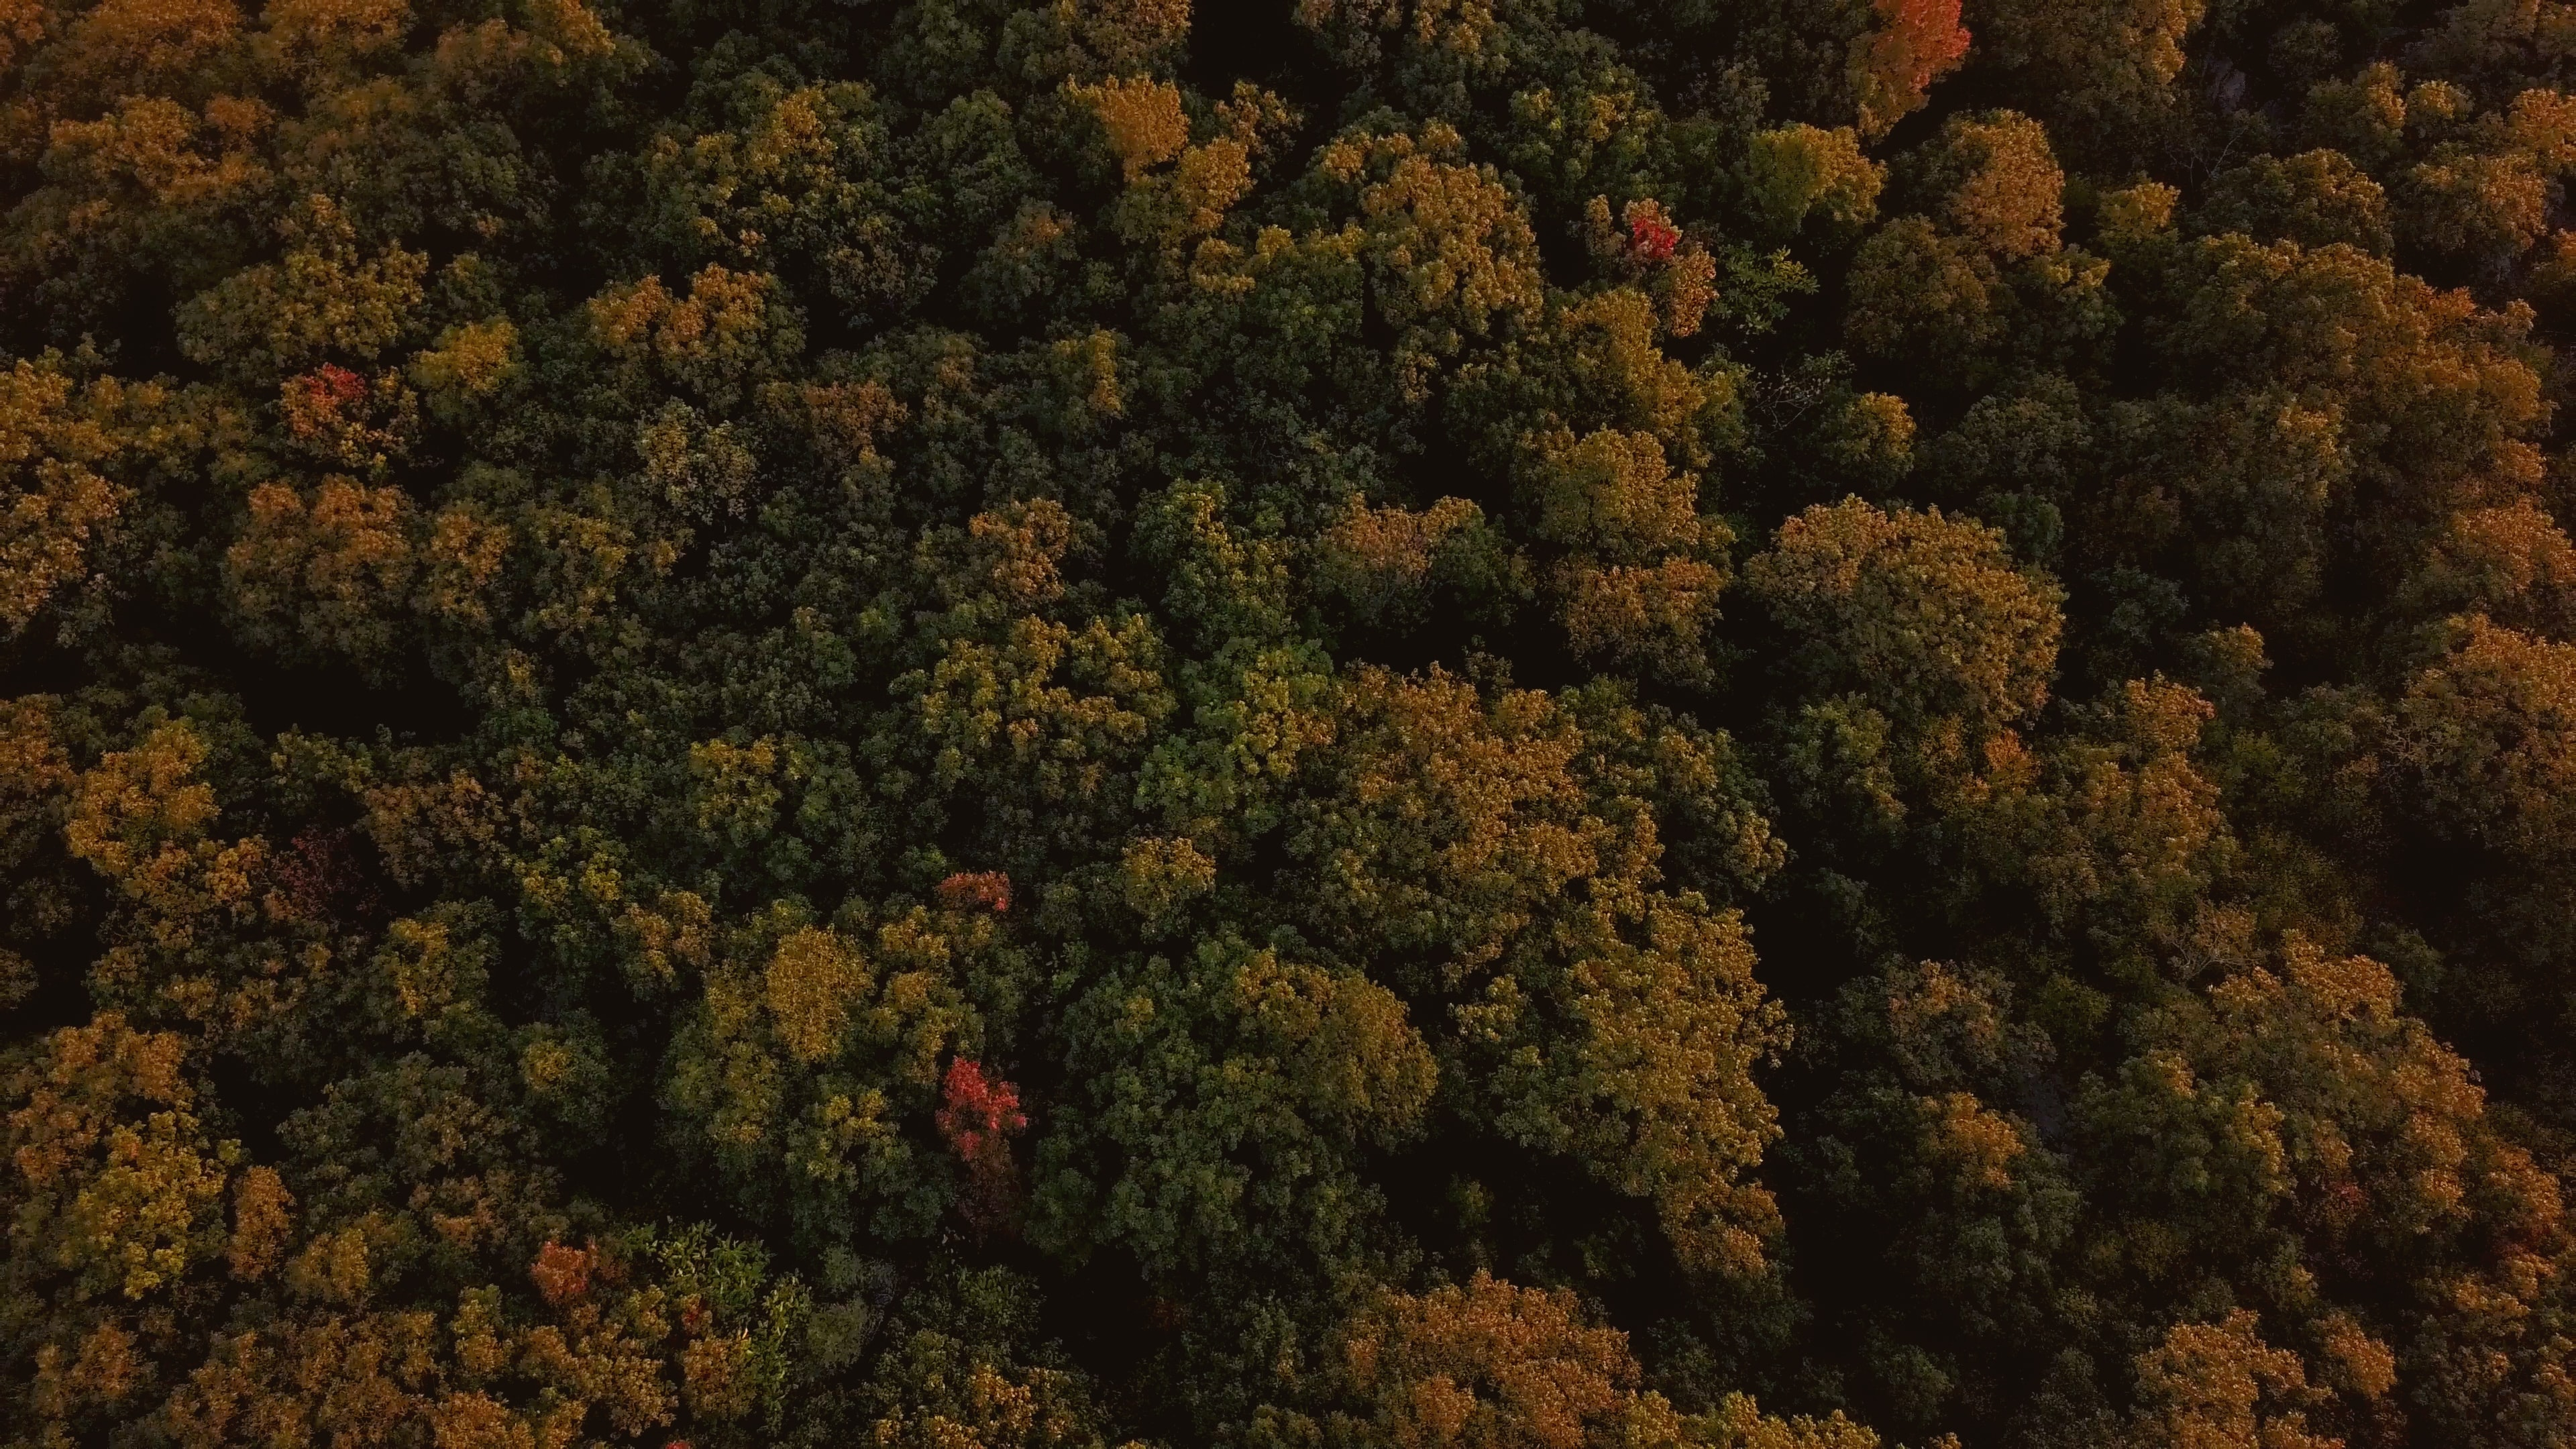 aerial view of green and brown forest at daytime